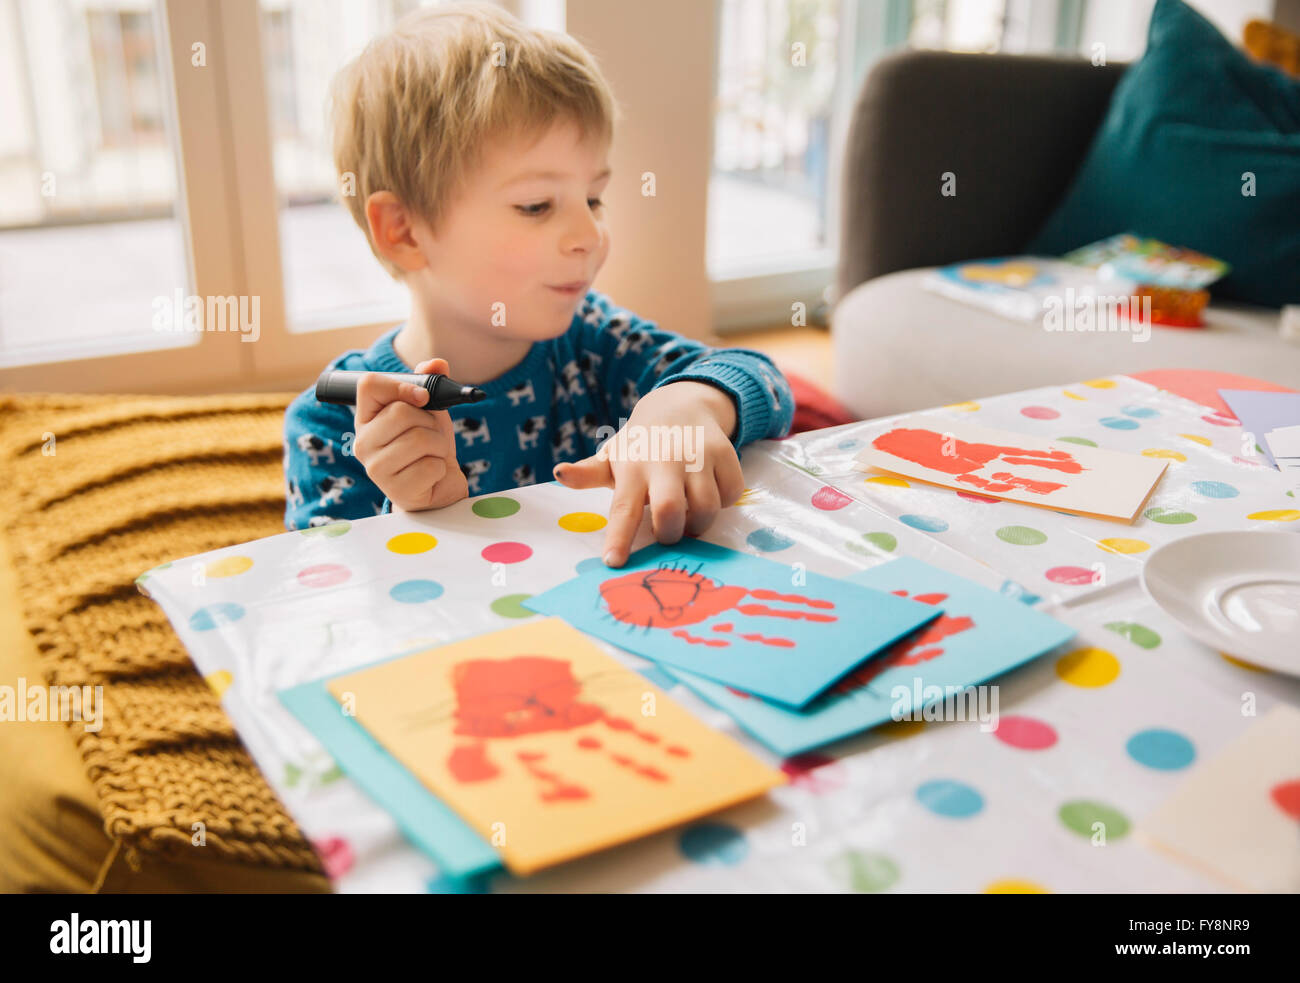 Little boy creating Easter cards with handprints at home - Stock Image